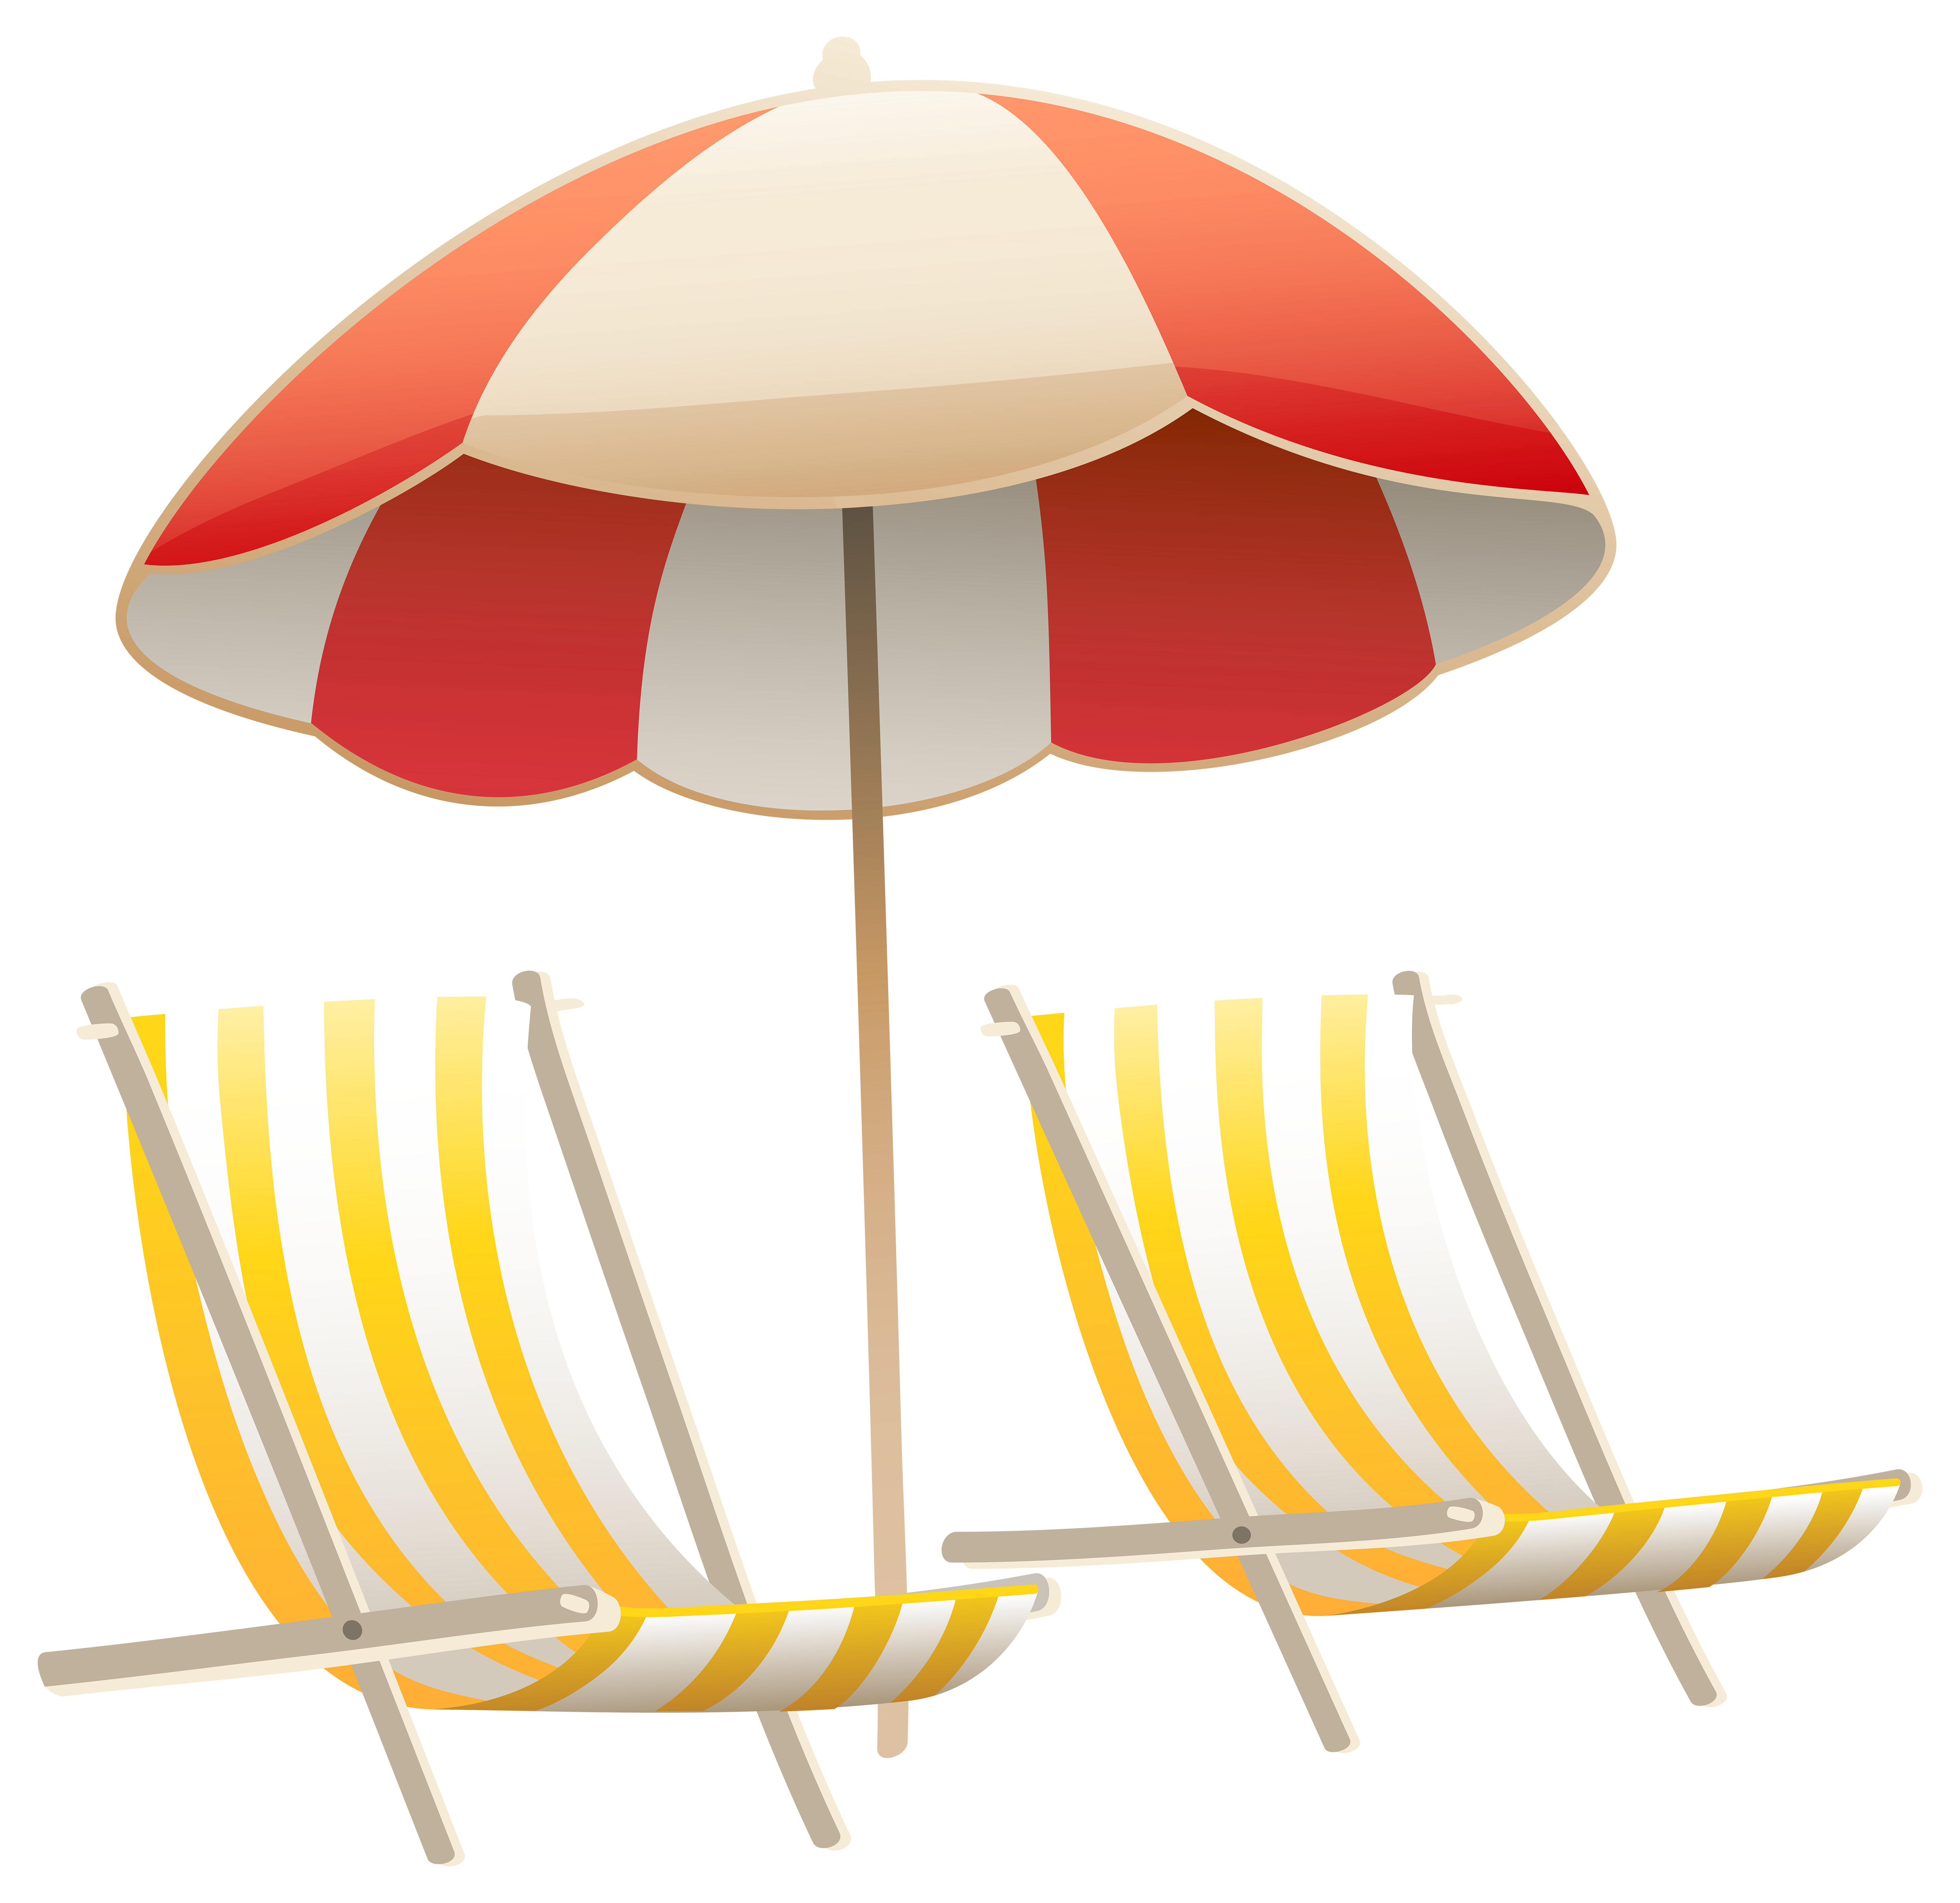 Sun umbrella clipart transparent library Beach Umbrella and Chairs PNG Clipart Image | Gallery Yopriceville ... transparent library